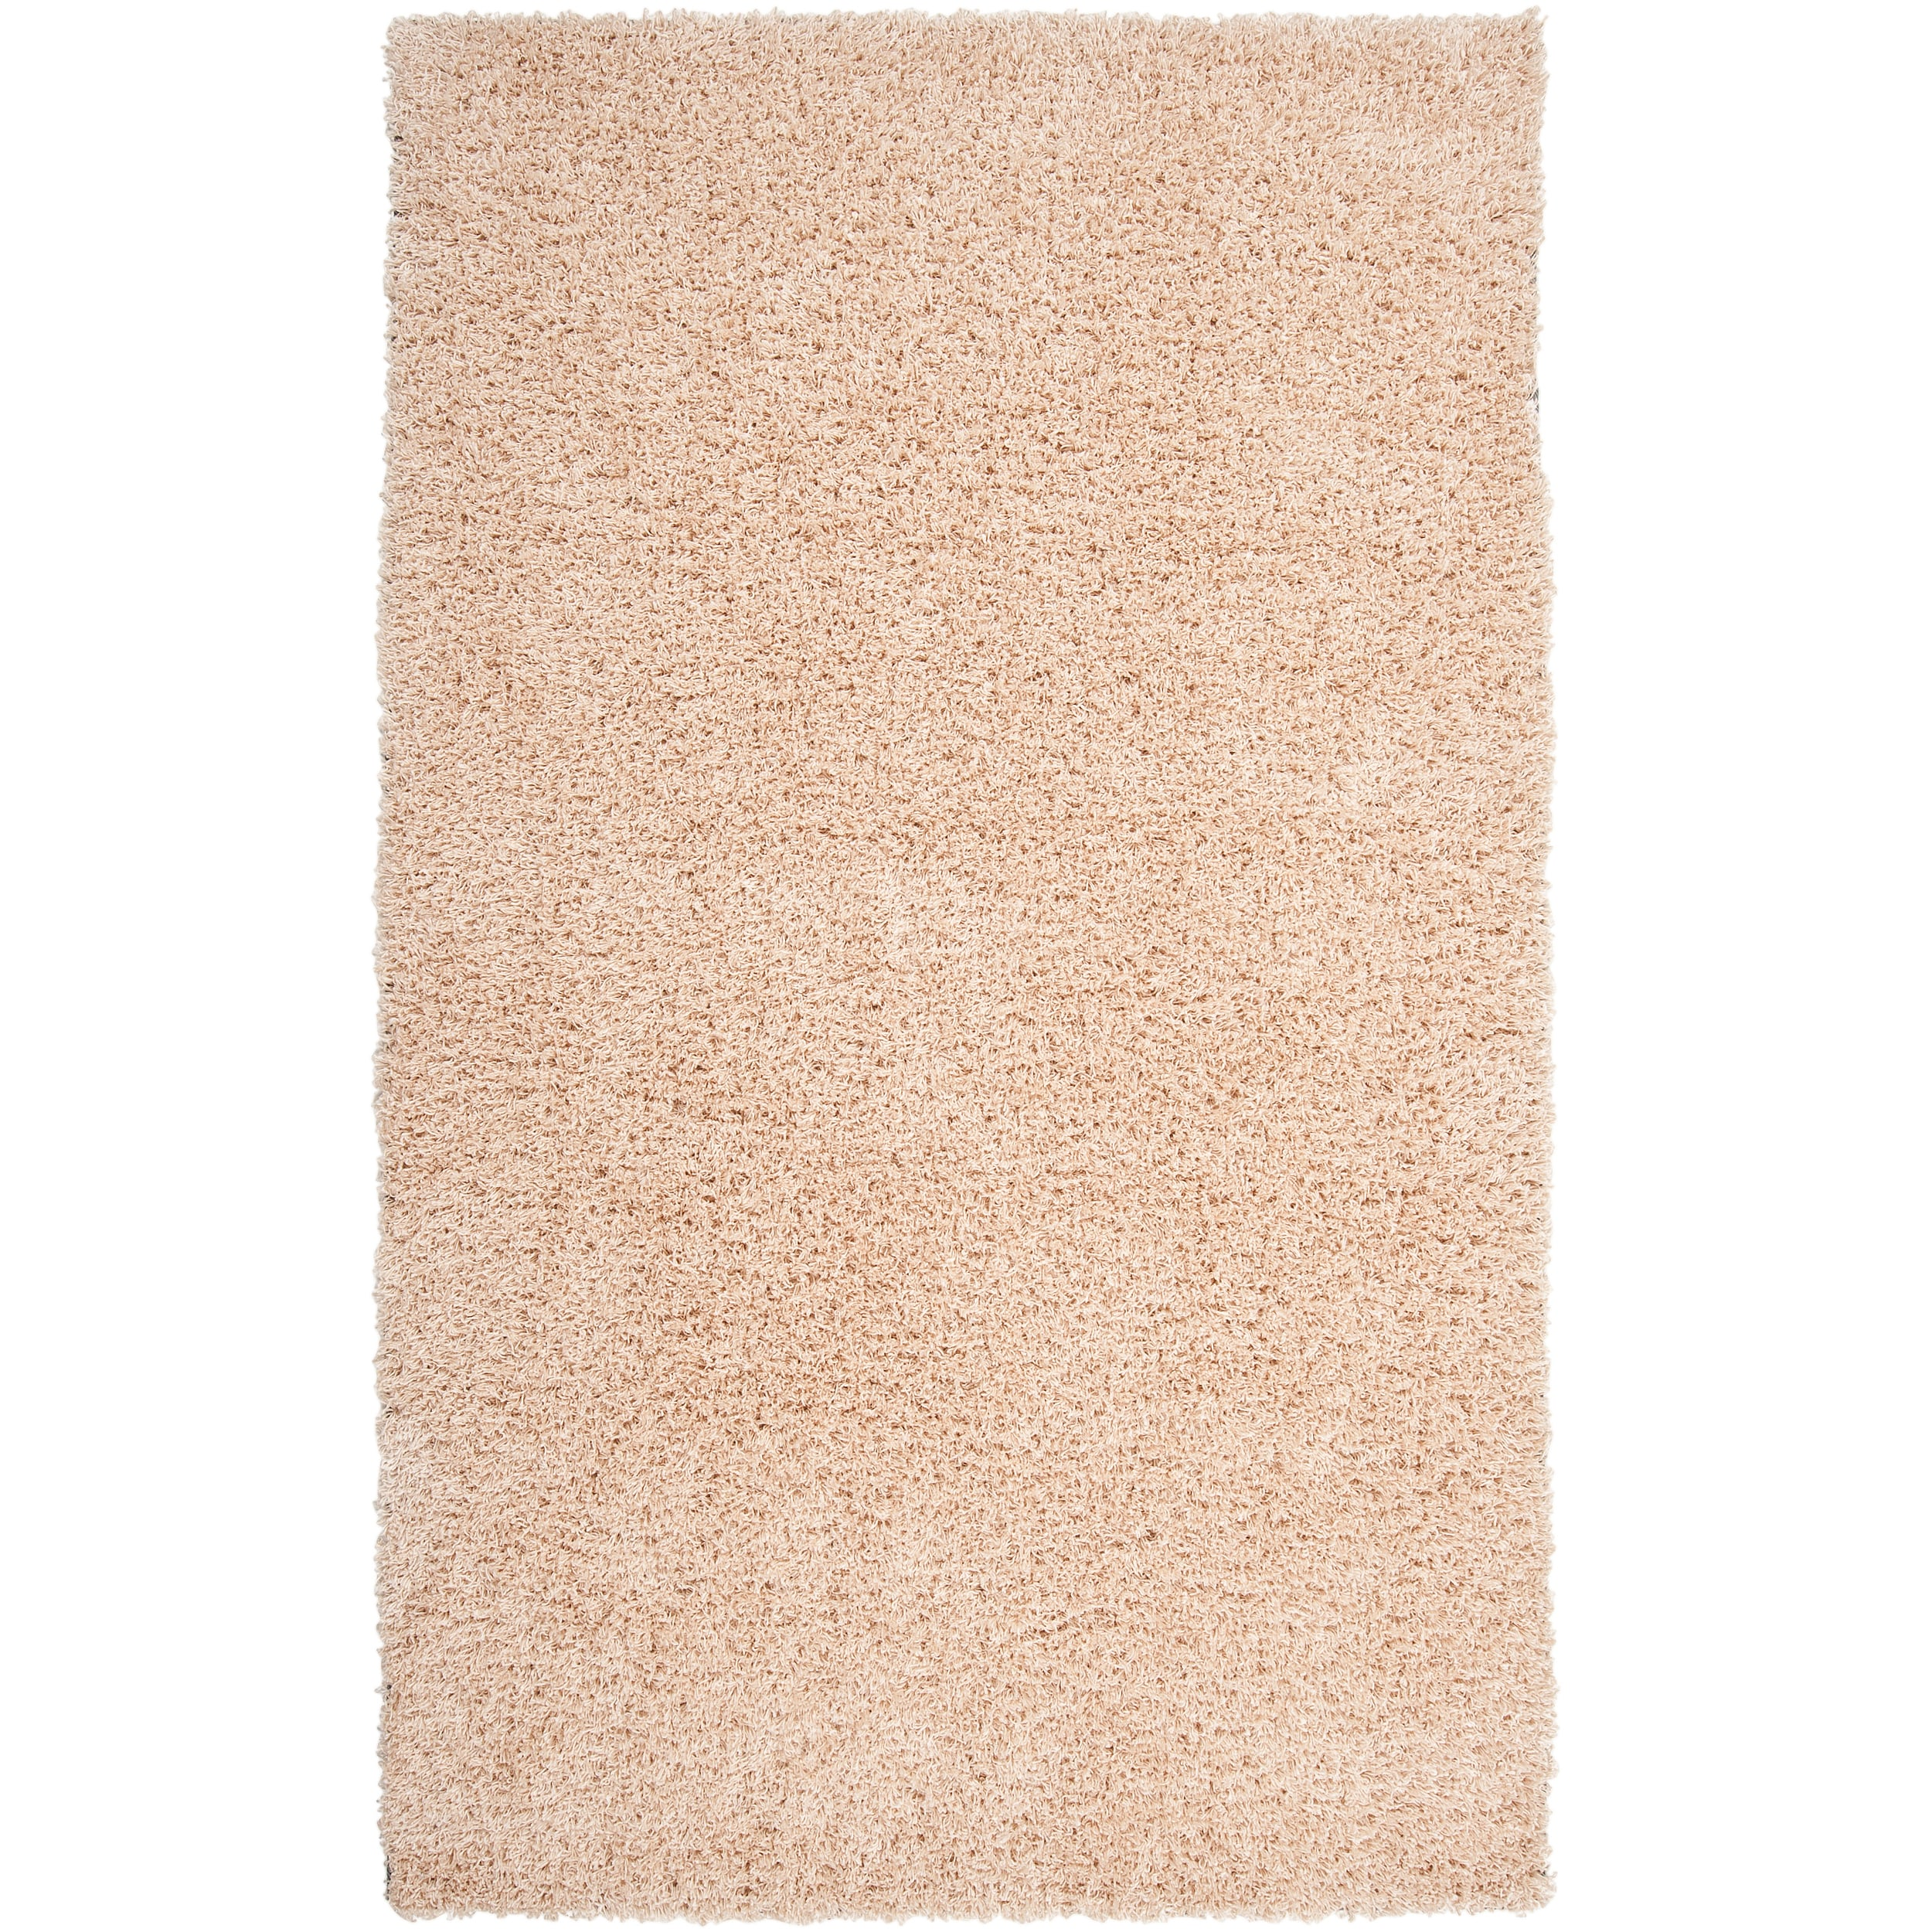 Woven Tan Wolden Rug (9' x 12')